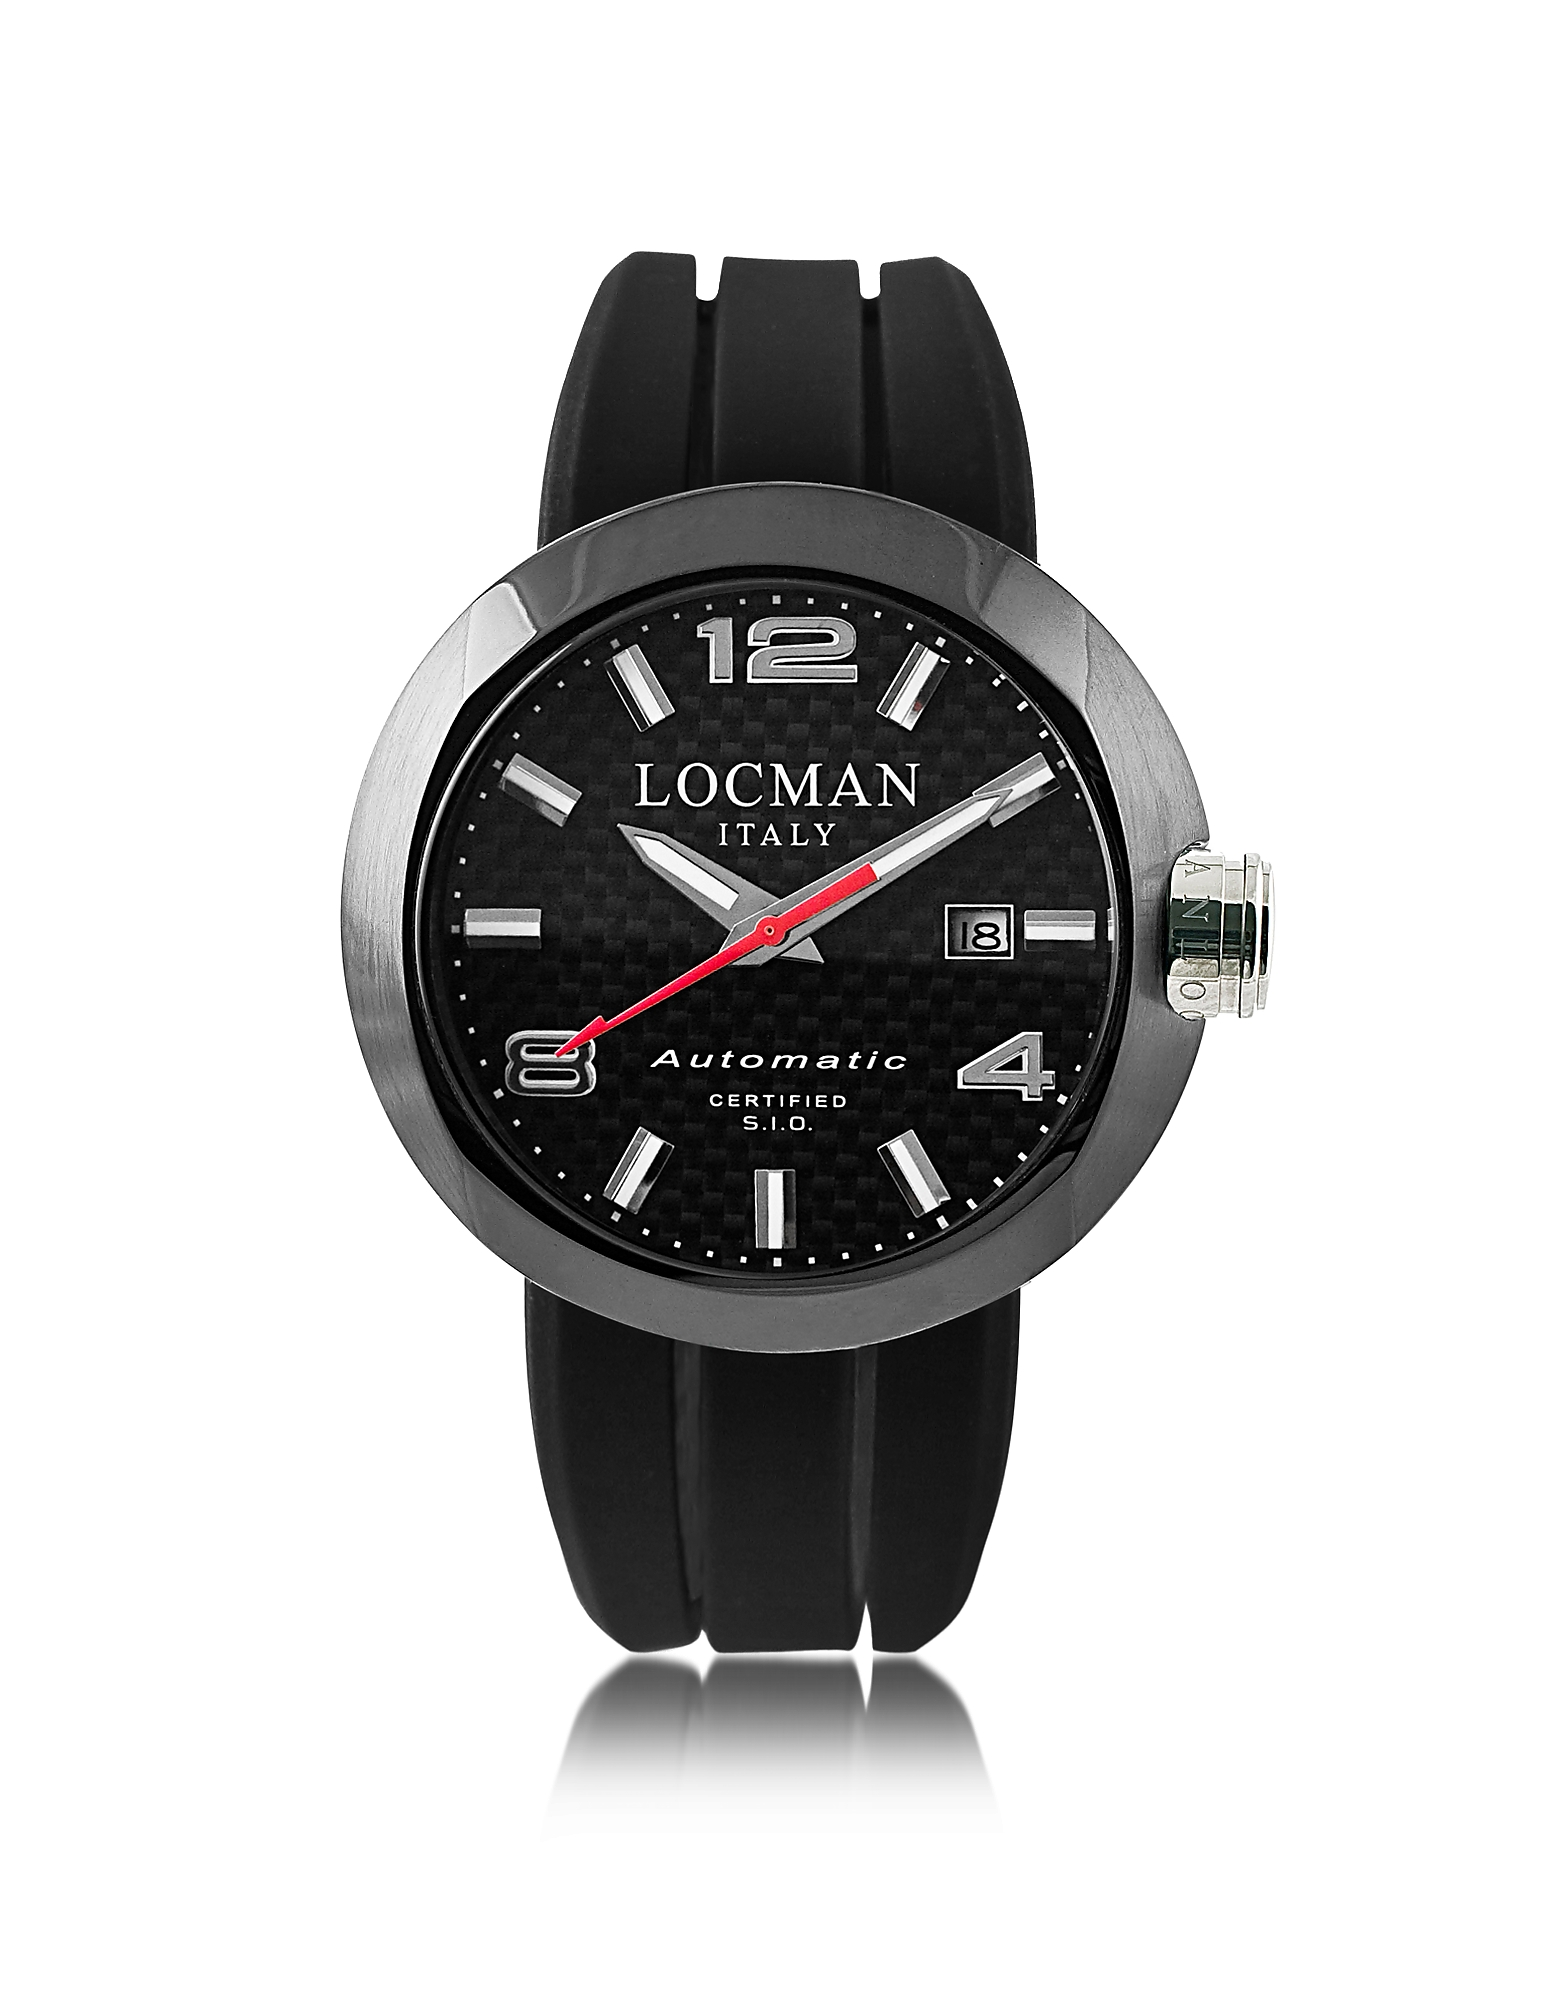 Locman Men's Watches, One Automatico Black PVD Stainless Steel Men's Watch w/Leather and Silicone Ba